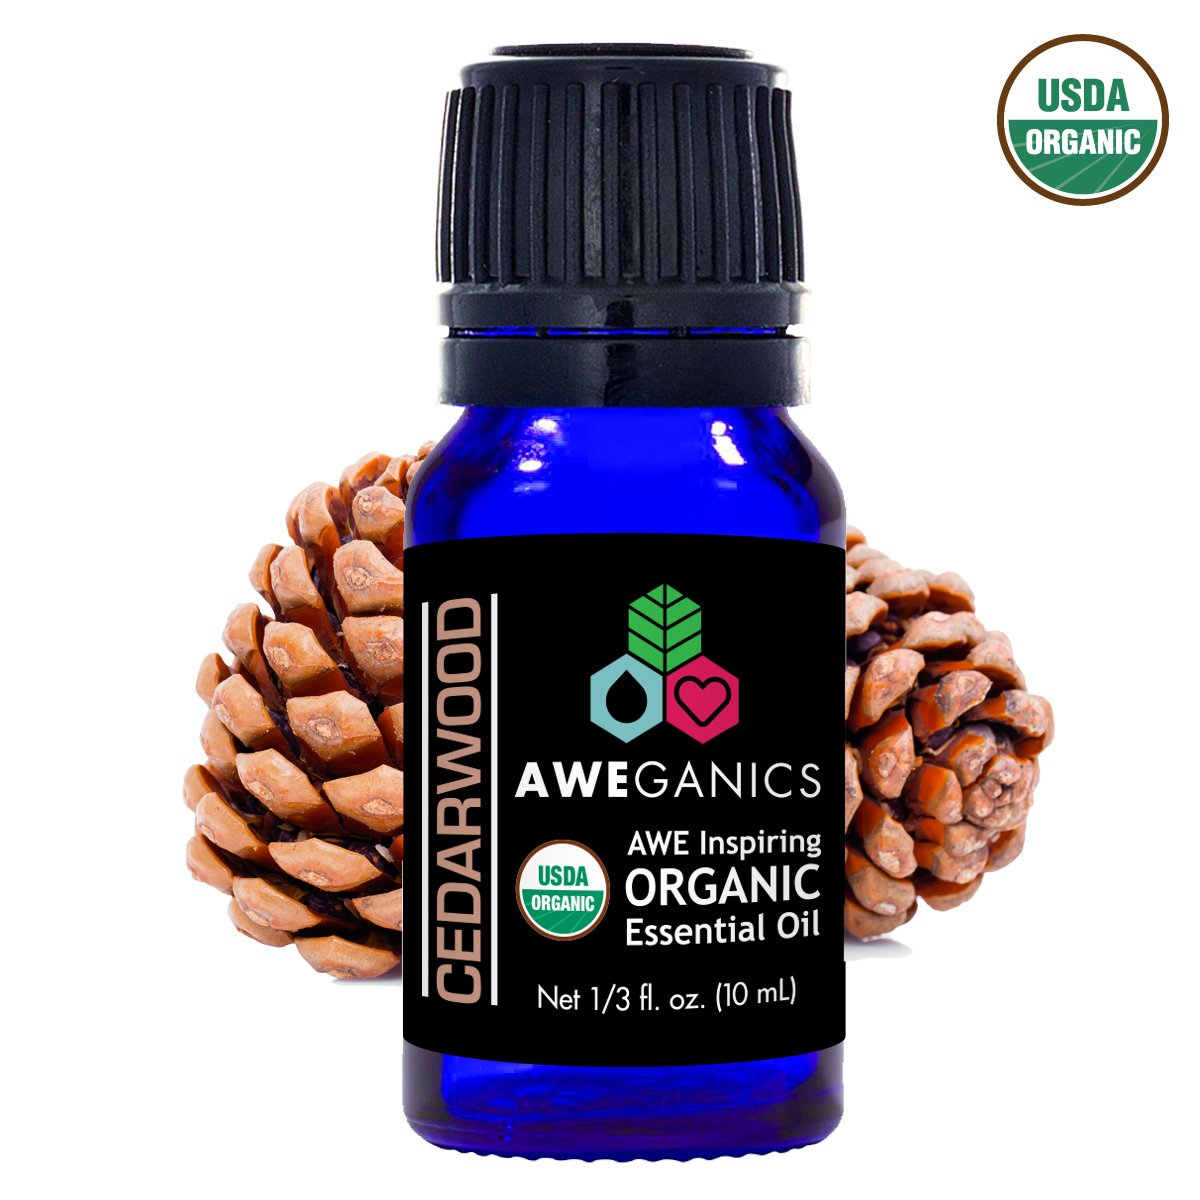 Cedarwood Essential Oil, 10 ml, USDA Organic, 100% Pure&Natural Therapeutic Grade - Aweganics (10 ml) - Pop Fashion